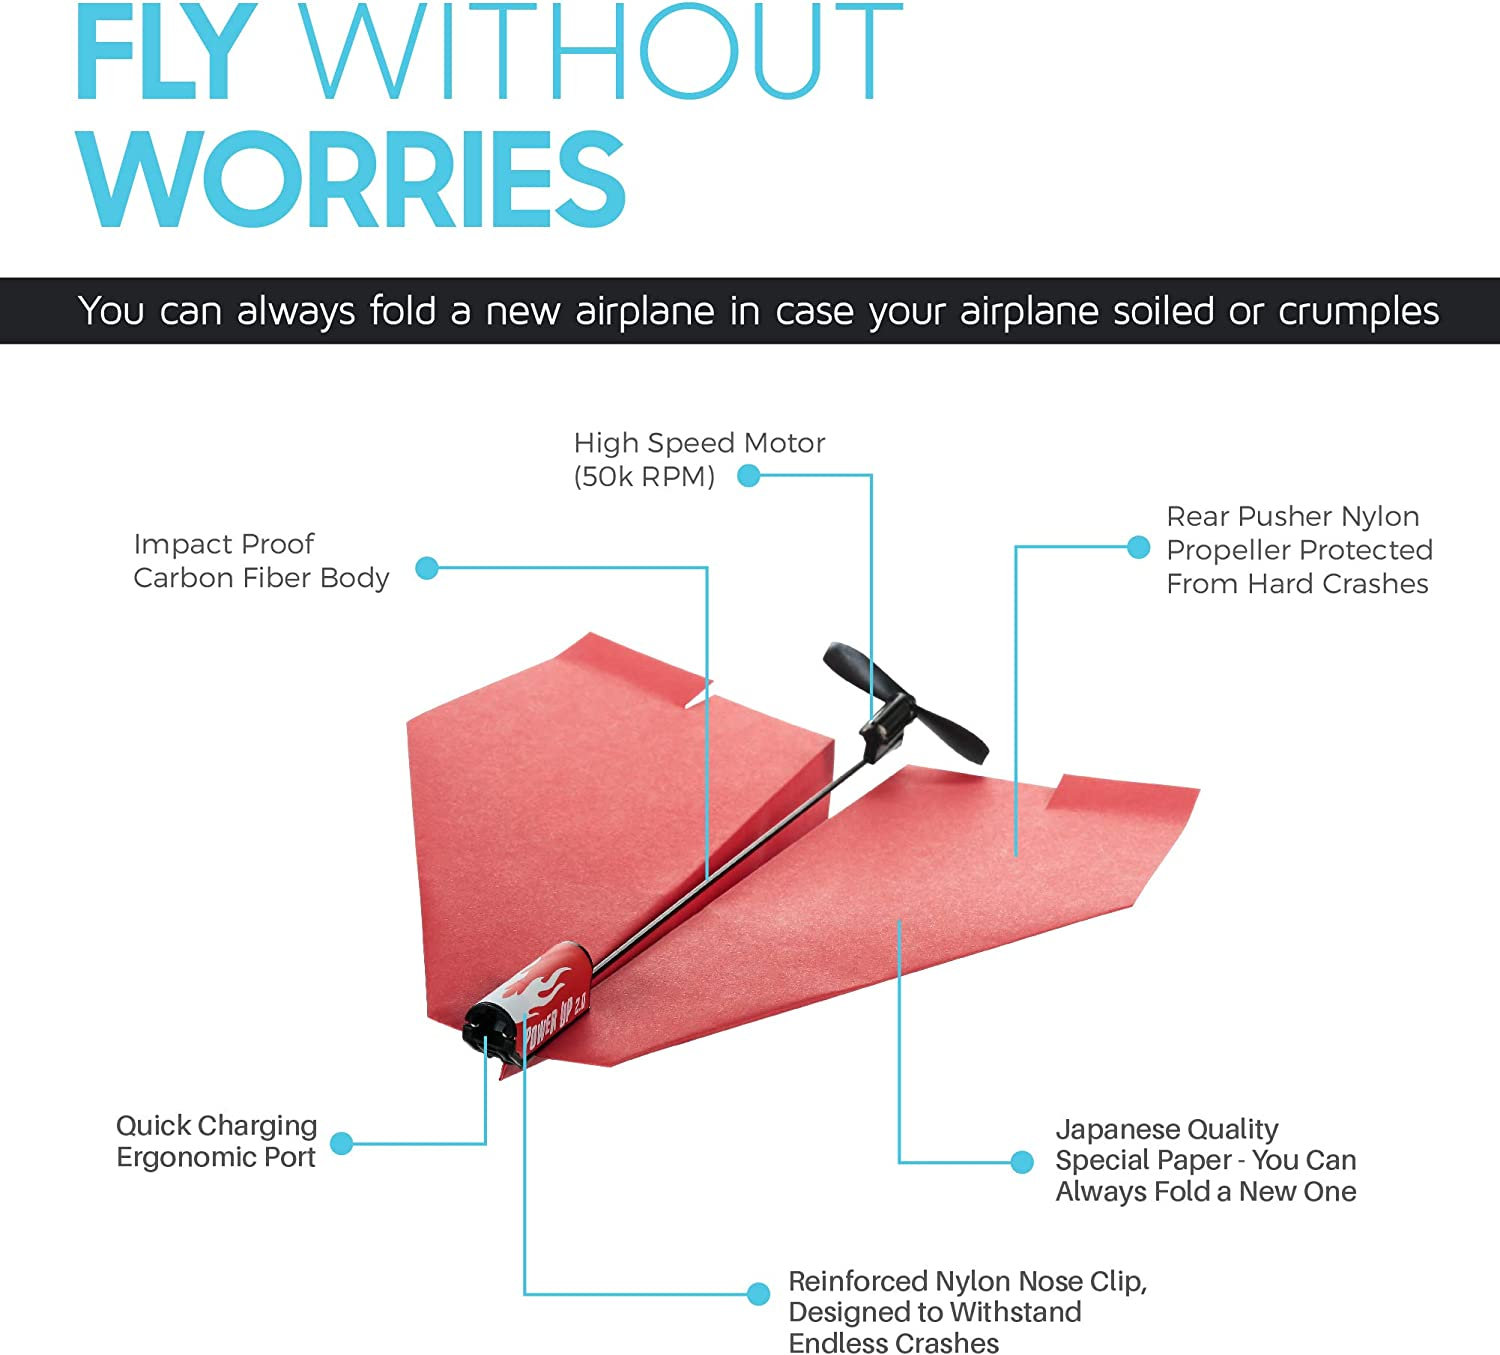 B00DTIYD4Y POWERUP 2.0 Paper Airplane Conversion Kit | Electric Motor for DIY Paper Planes | Fly Longer and Farther | Perfect for Kids & Adults | Ready to Use Aeroplane Engine Kits 8171b483AlL